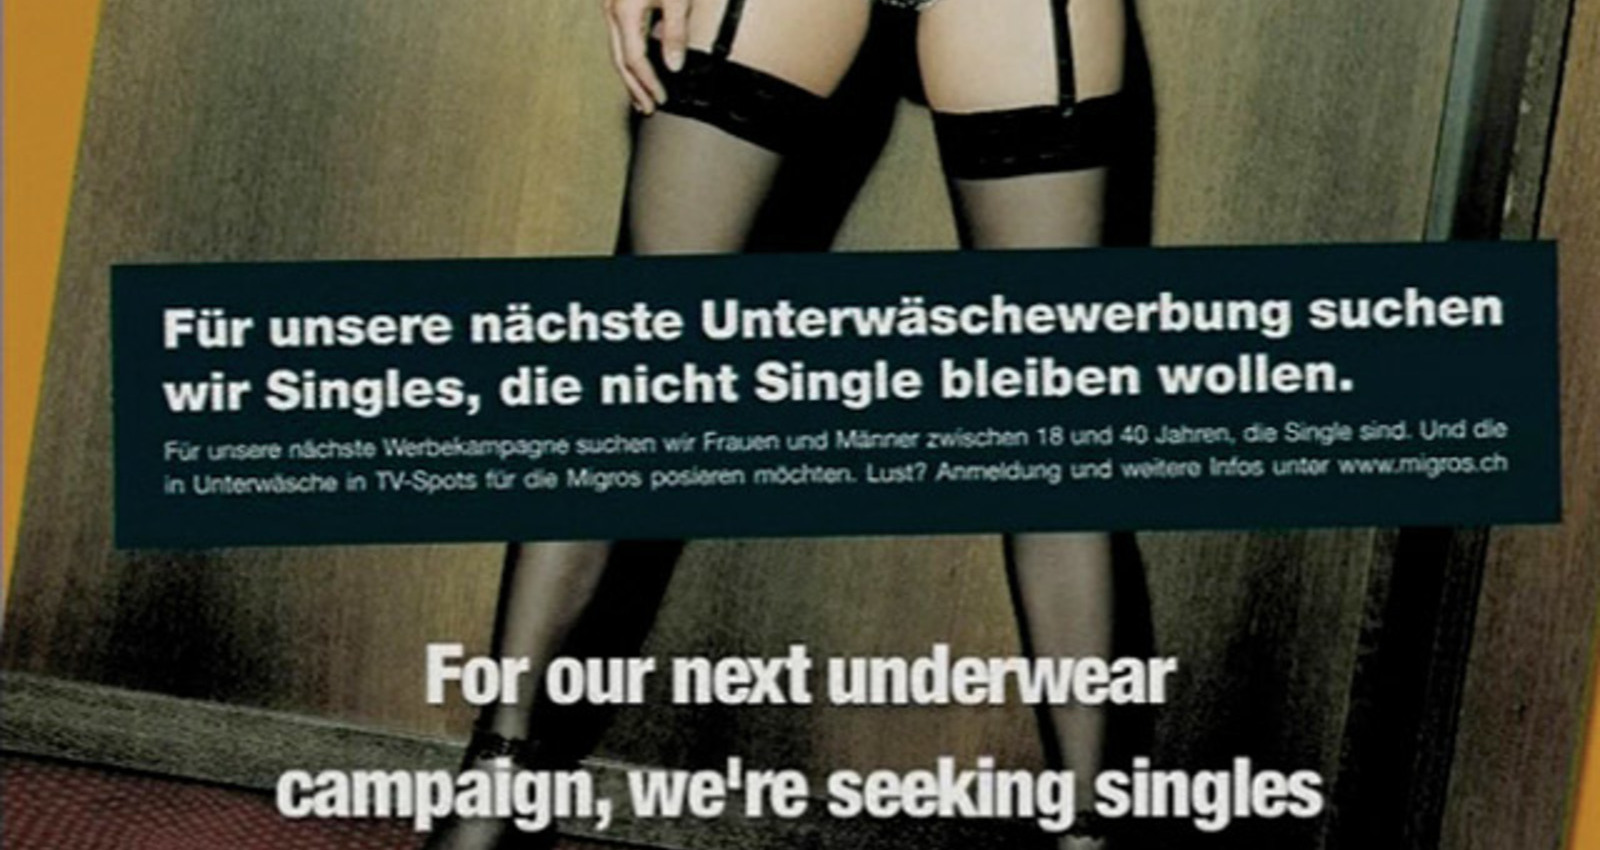 The First Underwear Models with Email Contact